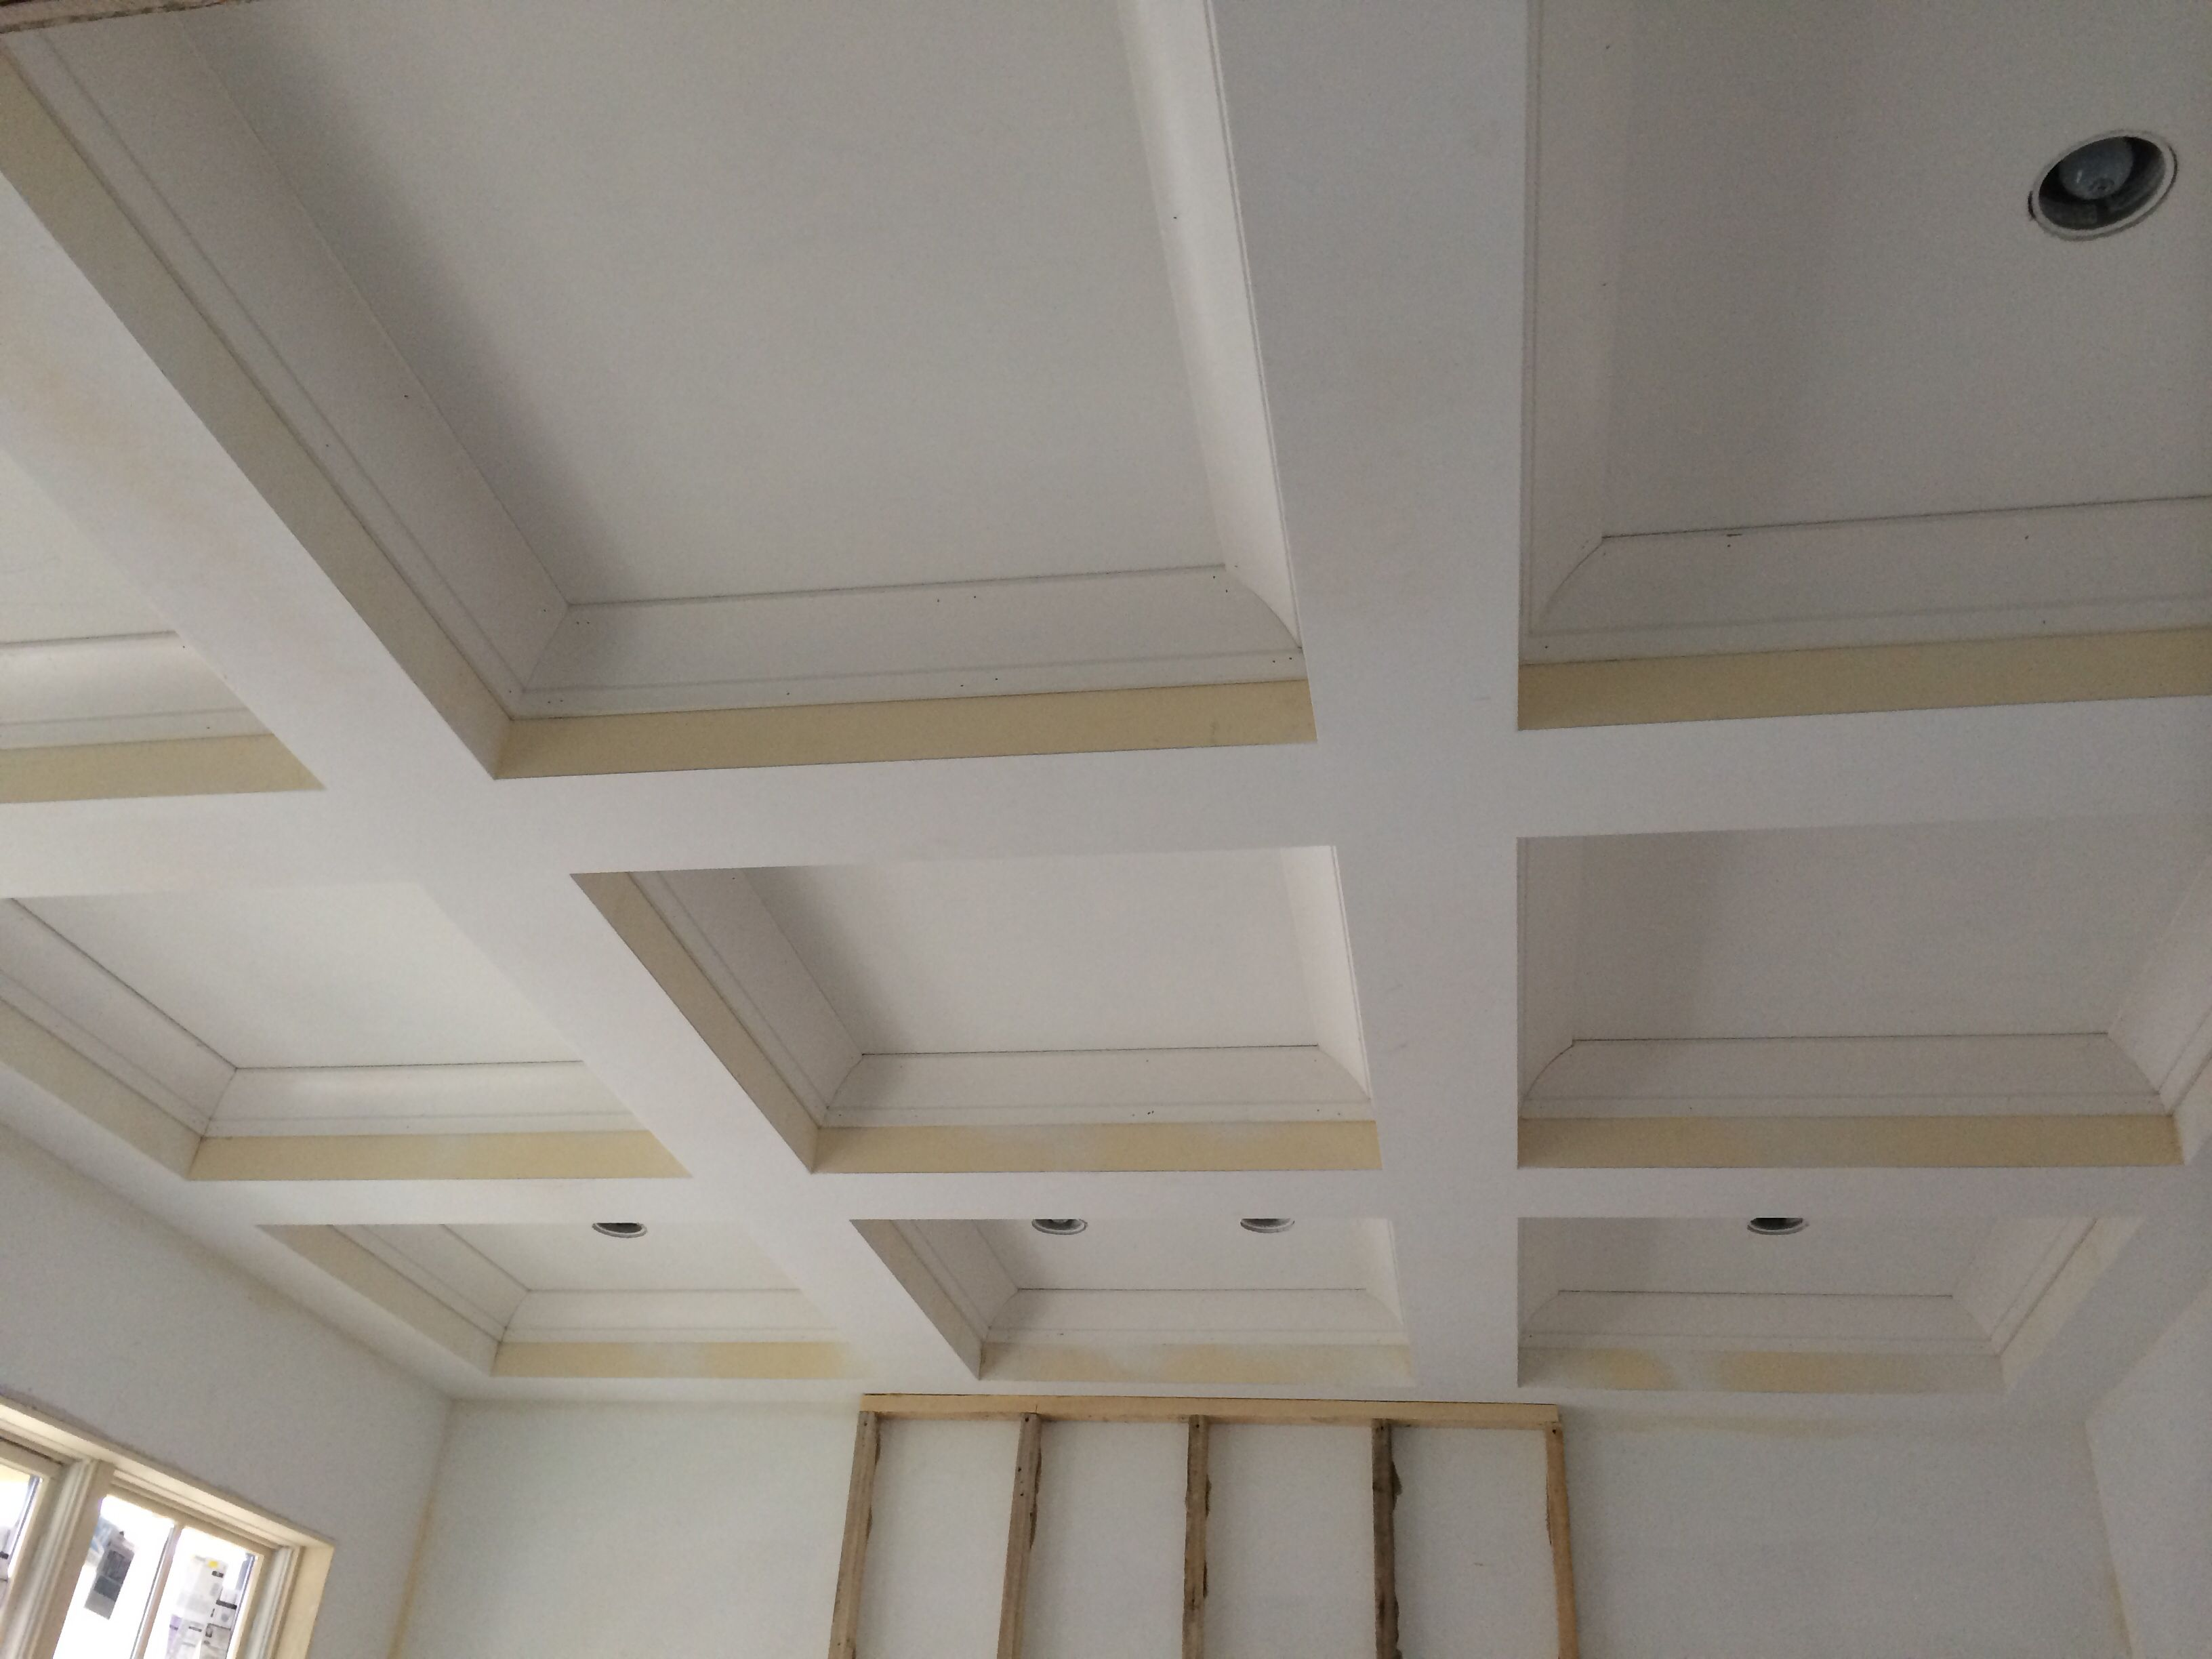 331 Coffered Ceiling Looking Good